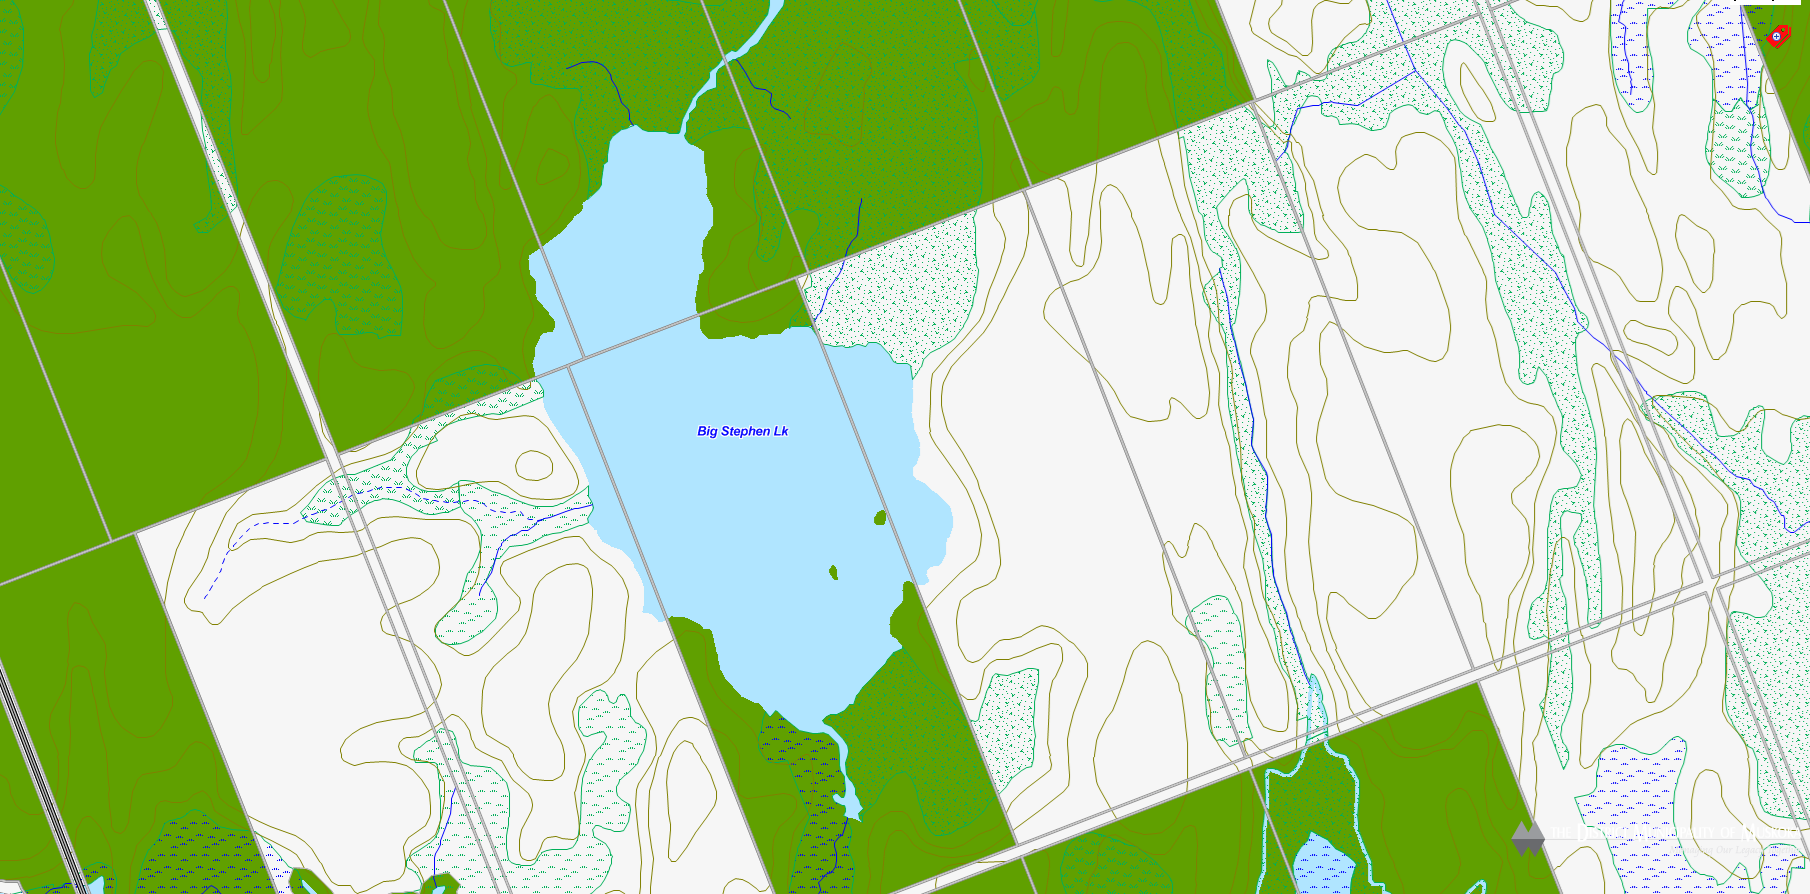 Big Stephen Lake Cadastral Map - Big Stephen Lake